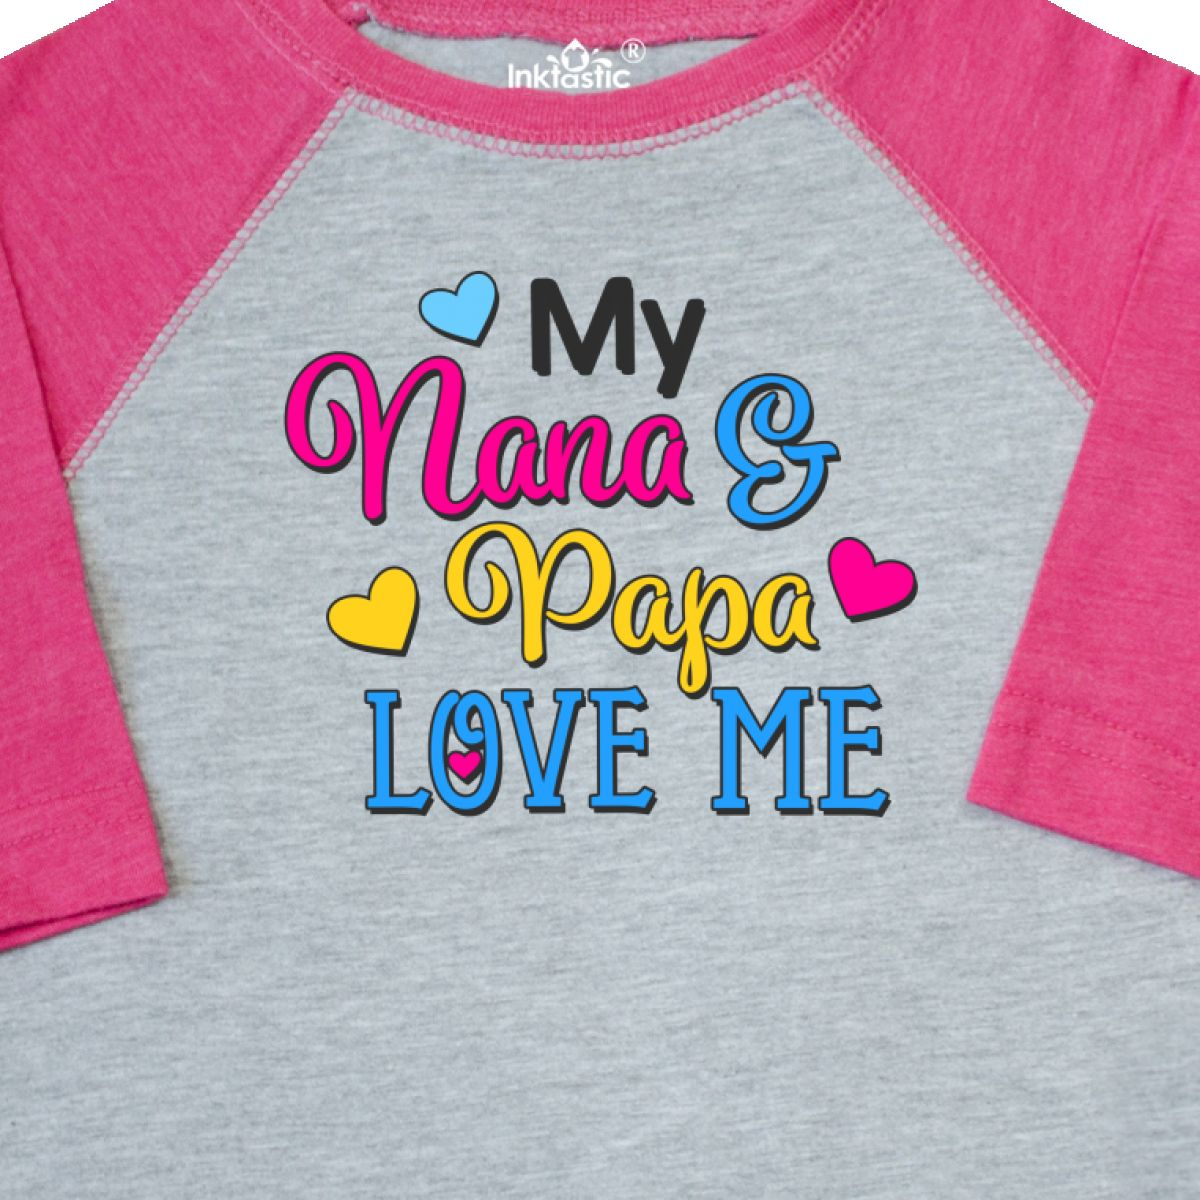 Inktastic My Nana And Papa Love Me With Hearts Toddler T-Shirt Family Cute Gift